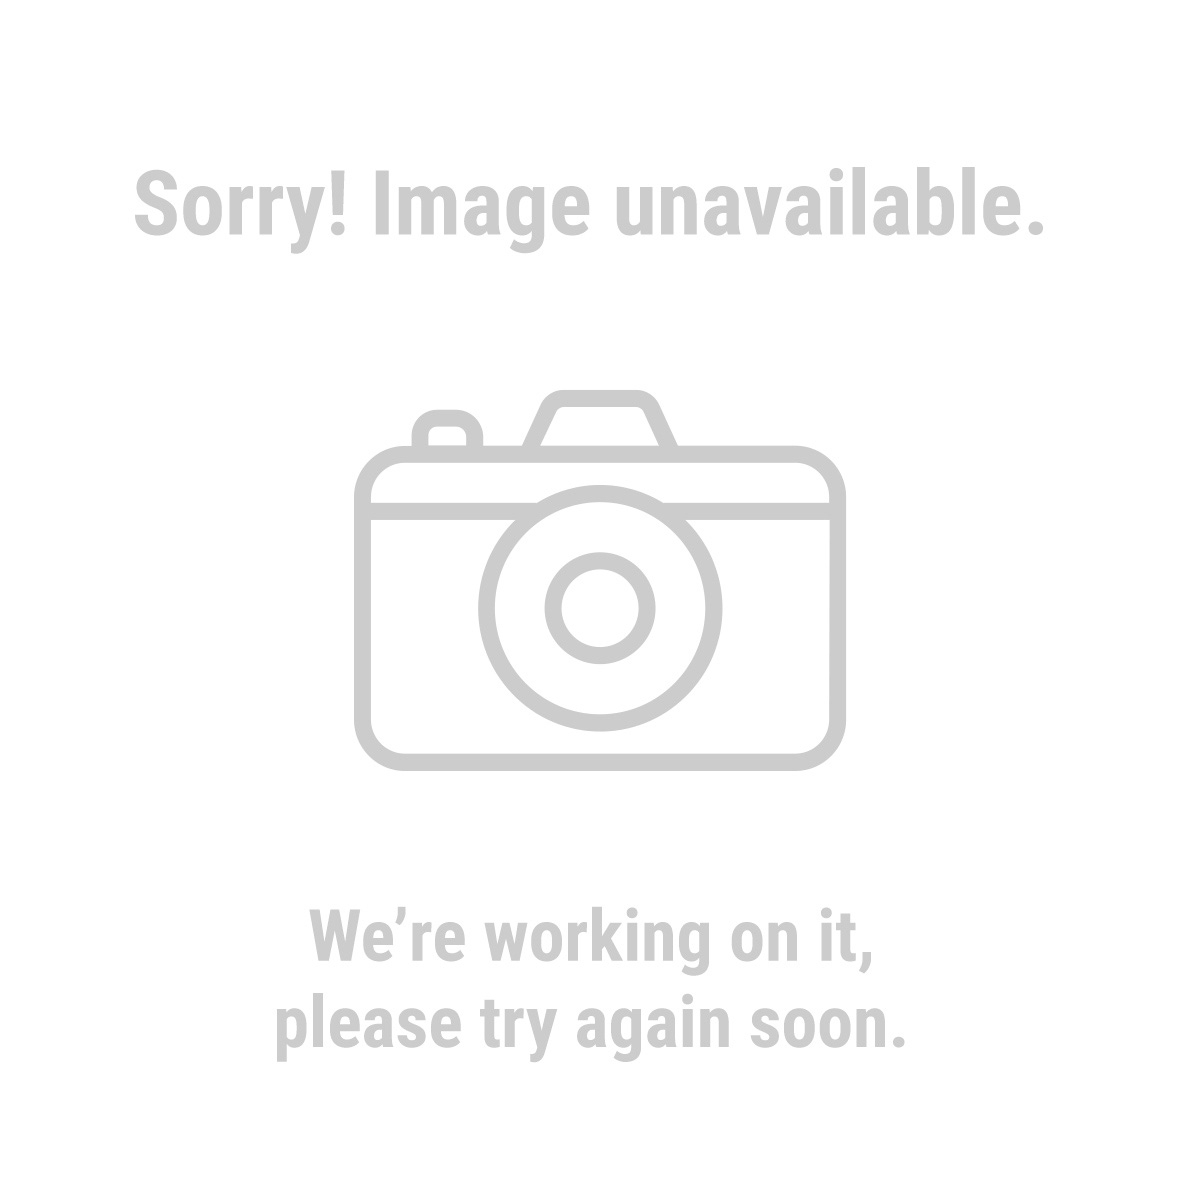 Central Machinery Accessories 96395 Drill Press Extension Table with Fence